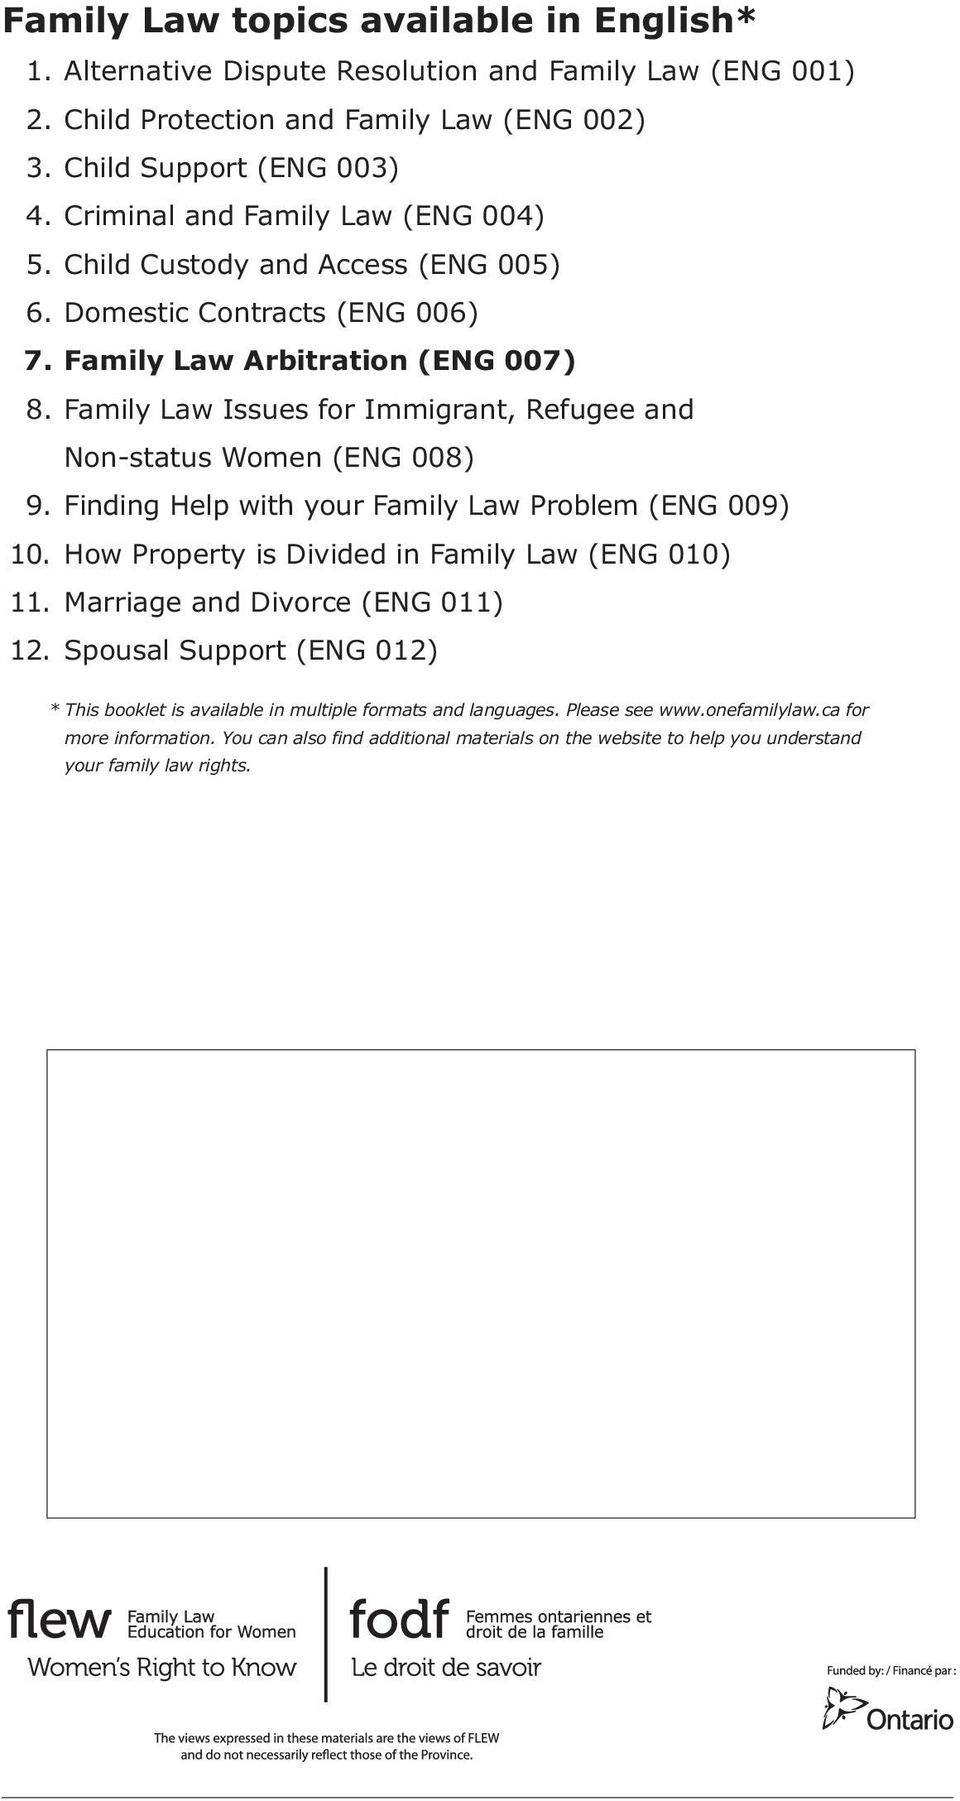 Family Law Issues for Immigrant, Refugee and Non-status Women (ENG 008) 9. Finding Help with your Family Law Problem (ENG 009) 10. How Property is Divided in Family Law (ENG 010) 11.